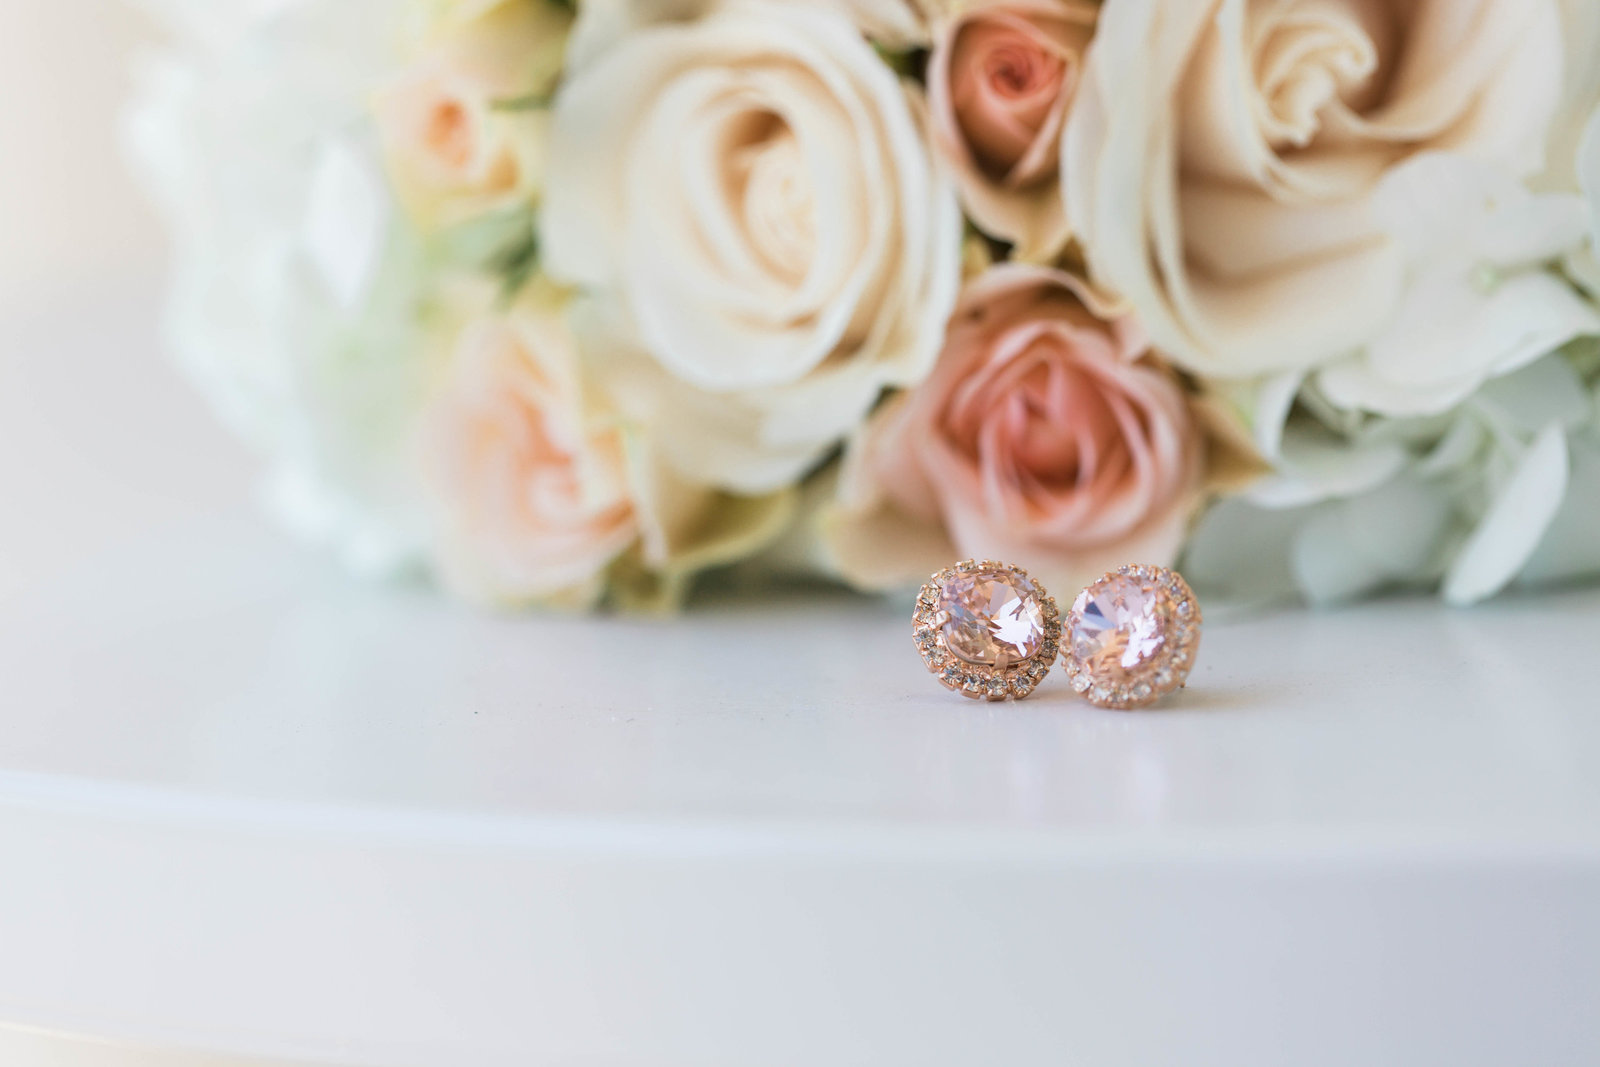 rose quartz wedding details